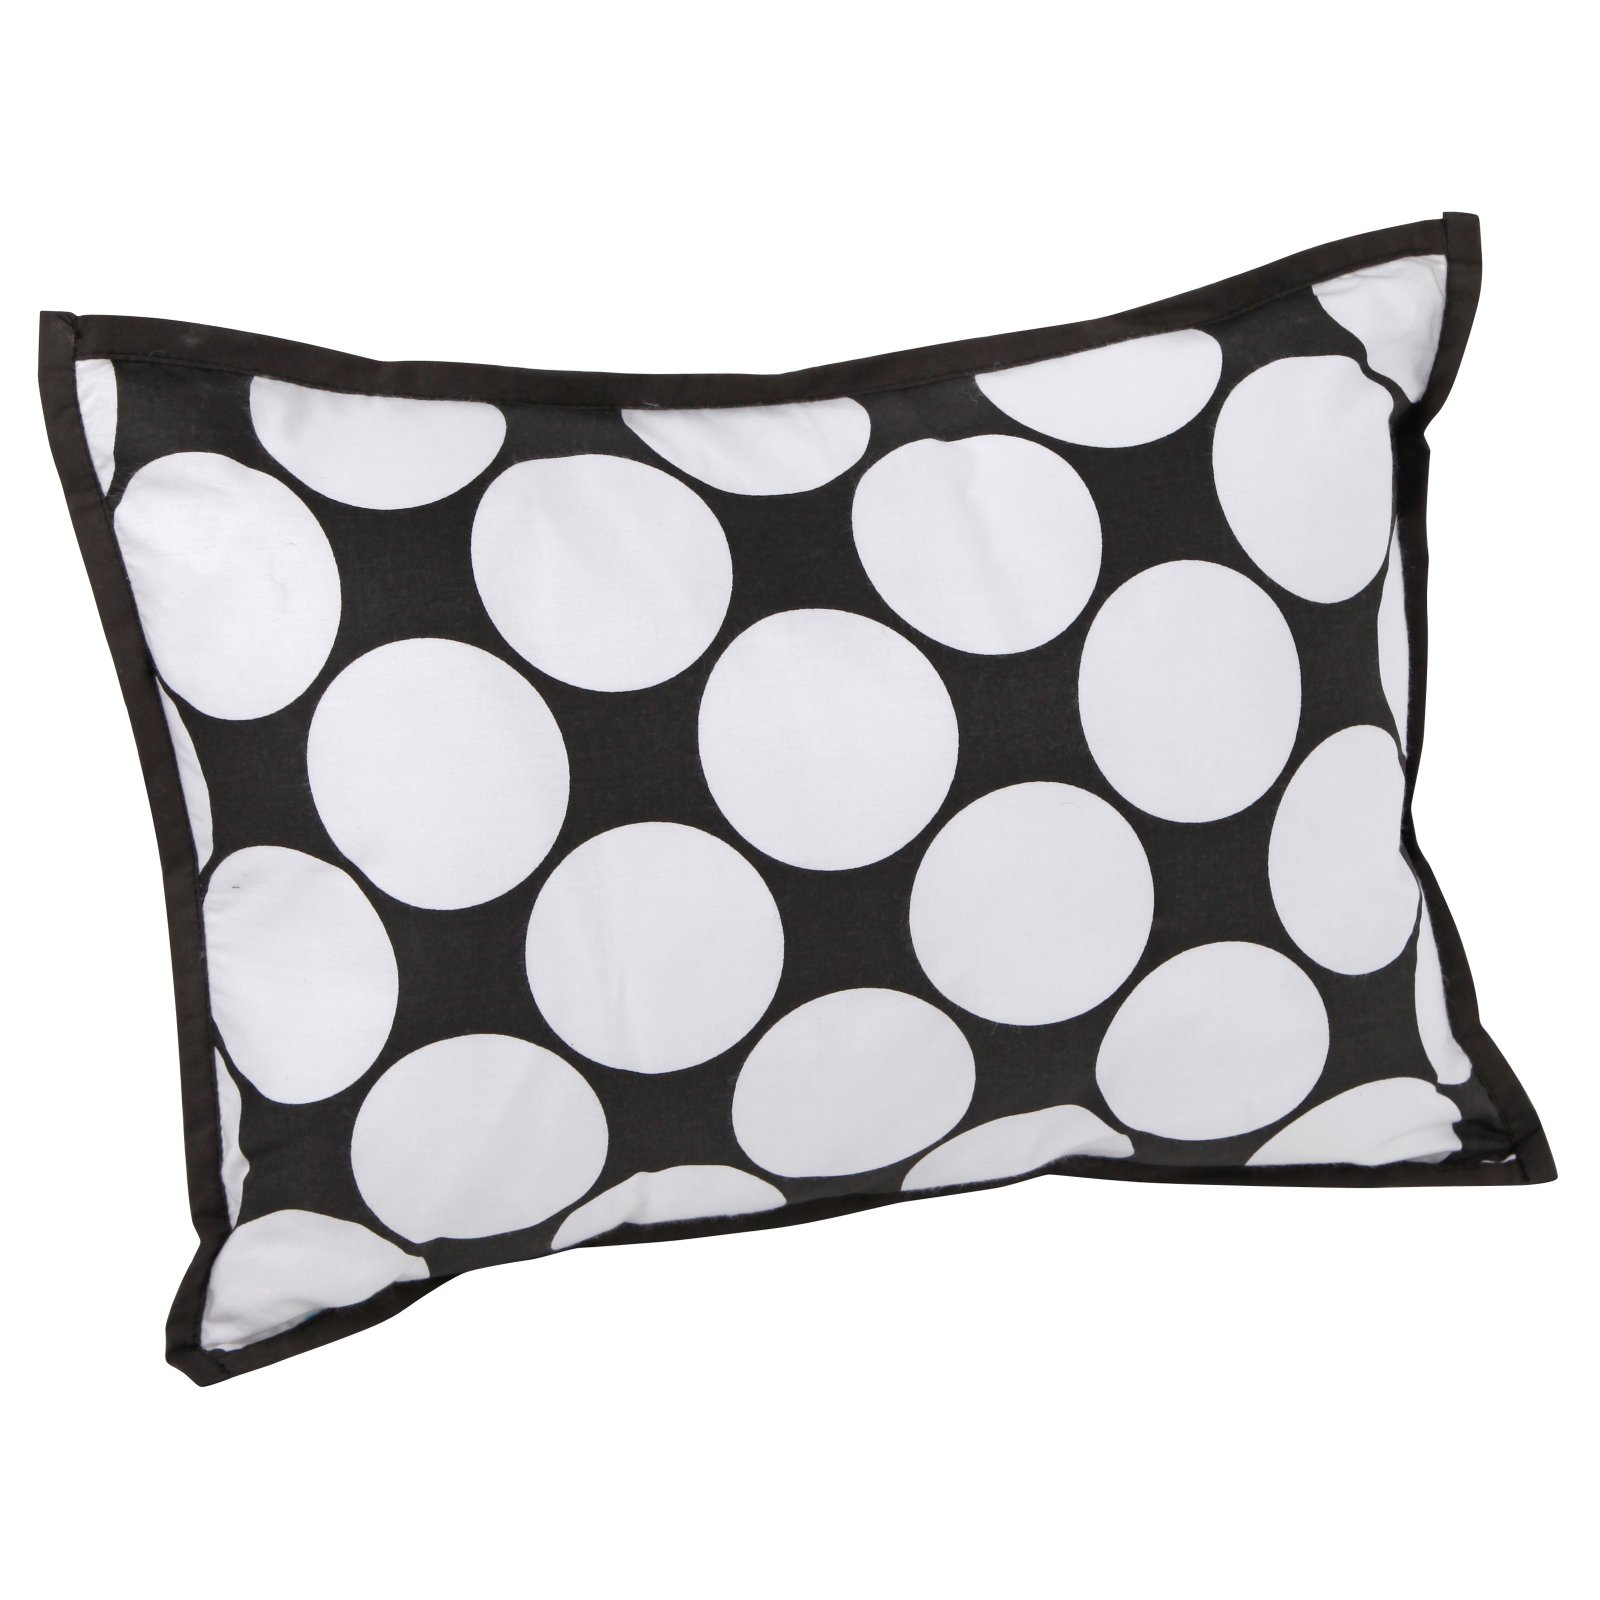 Bacati Dots Pin Stripes Dec Pillow 12 X 16 Inches With Removable 100 Cotton Cover And Polyfilled Insert Gray Yellow